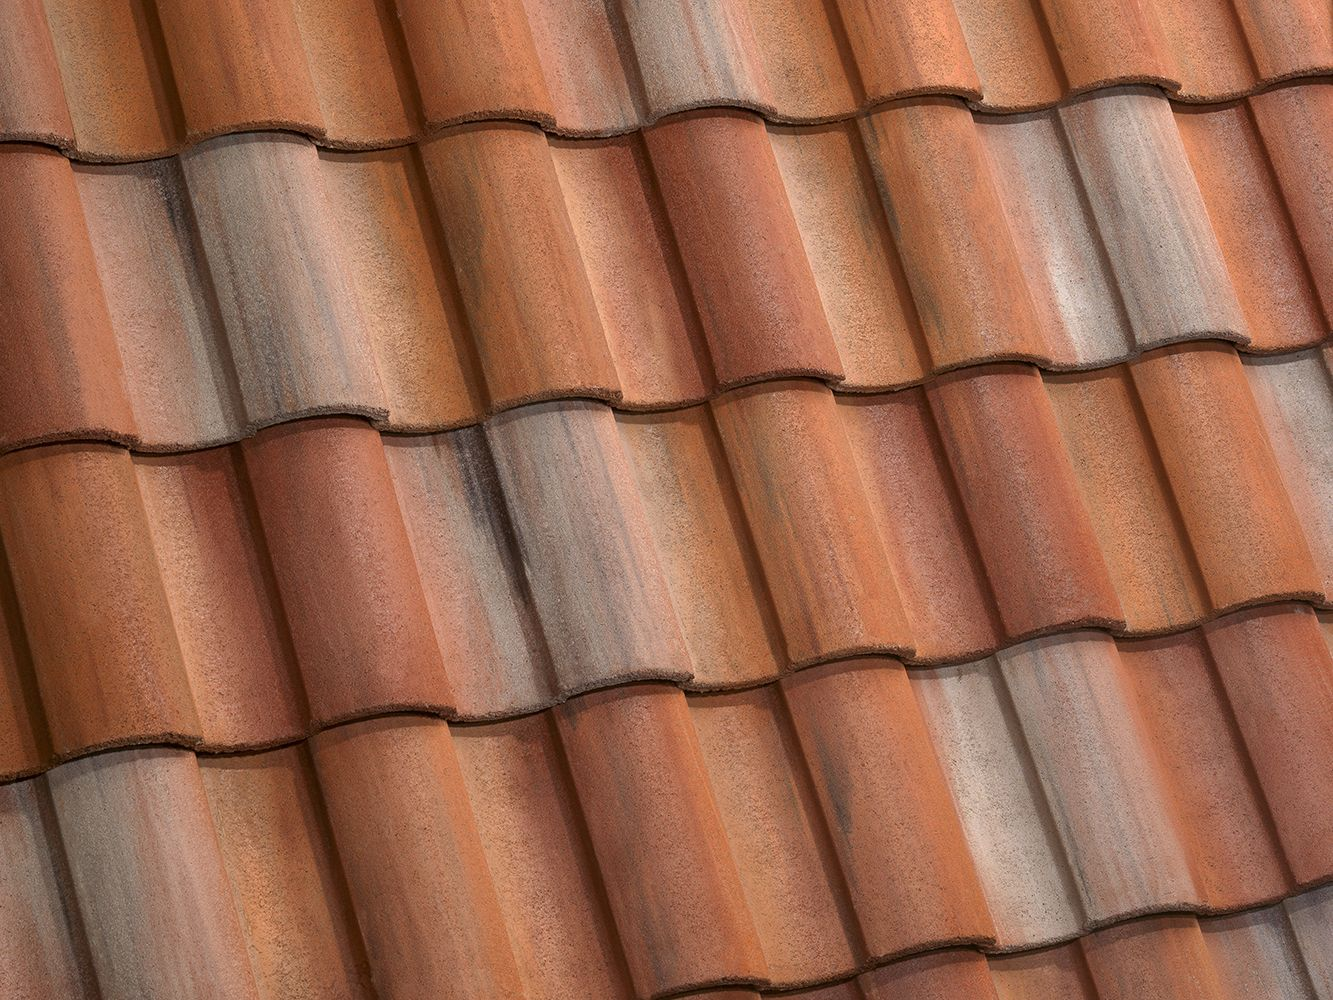 3629 - Capistrano, Floridian Blend (With images) | Roofing ...